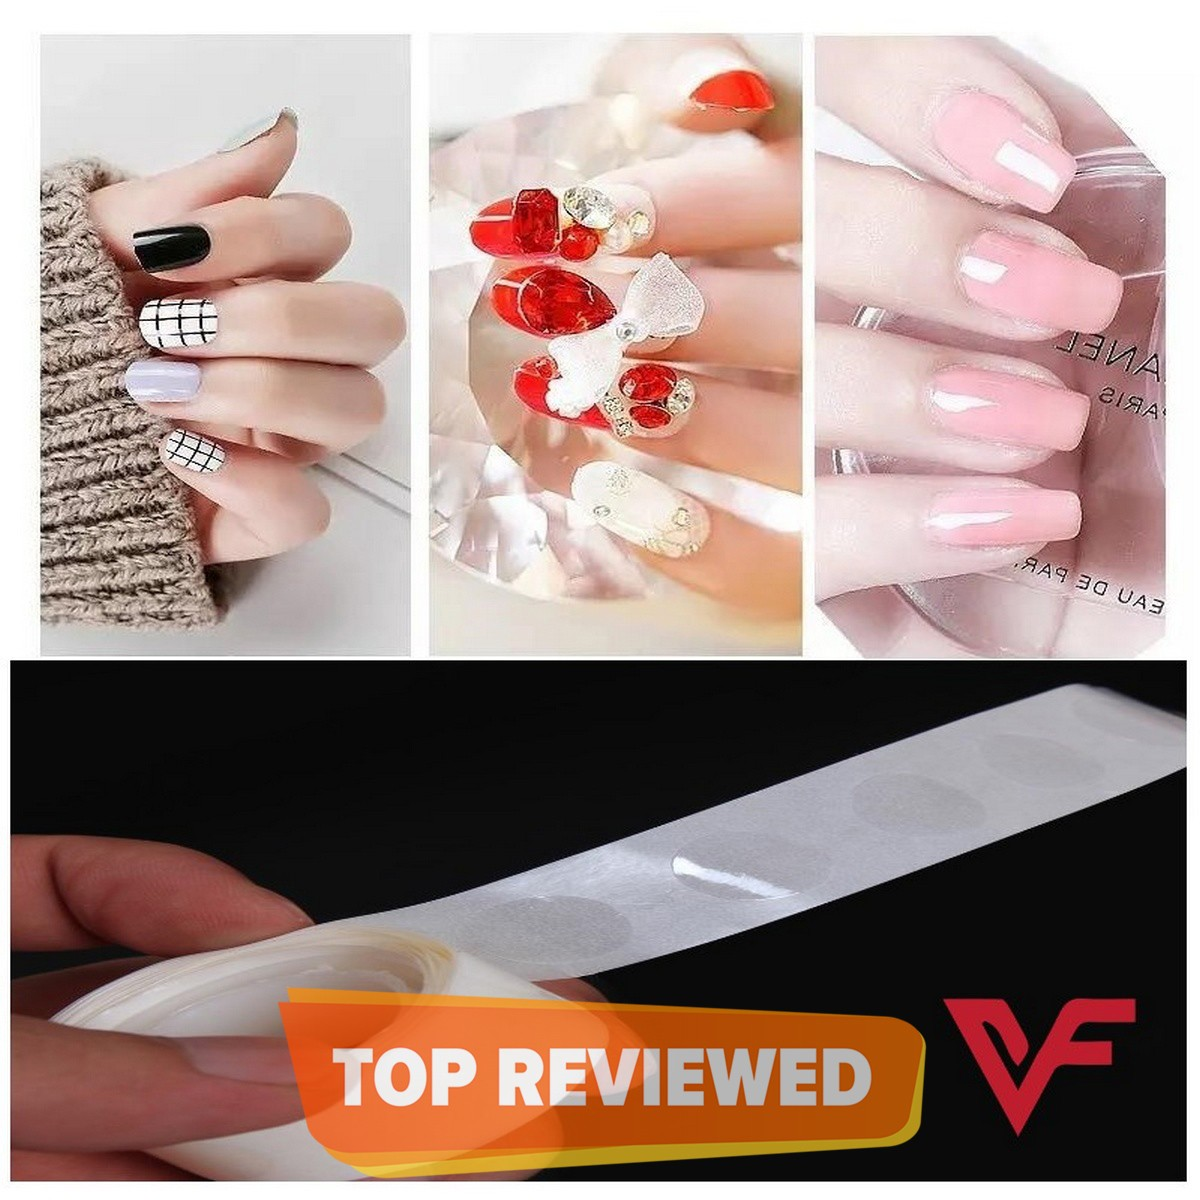 100 Glue Dots Fakee Nails Sticker Transparent Double Sided Adhesive Tapes Stickers Falsee Nail Tips Extension Stick Tools Artificial Nails Sticker